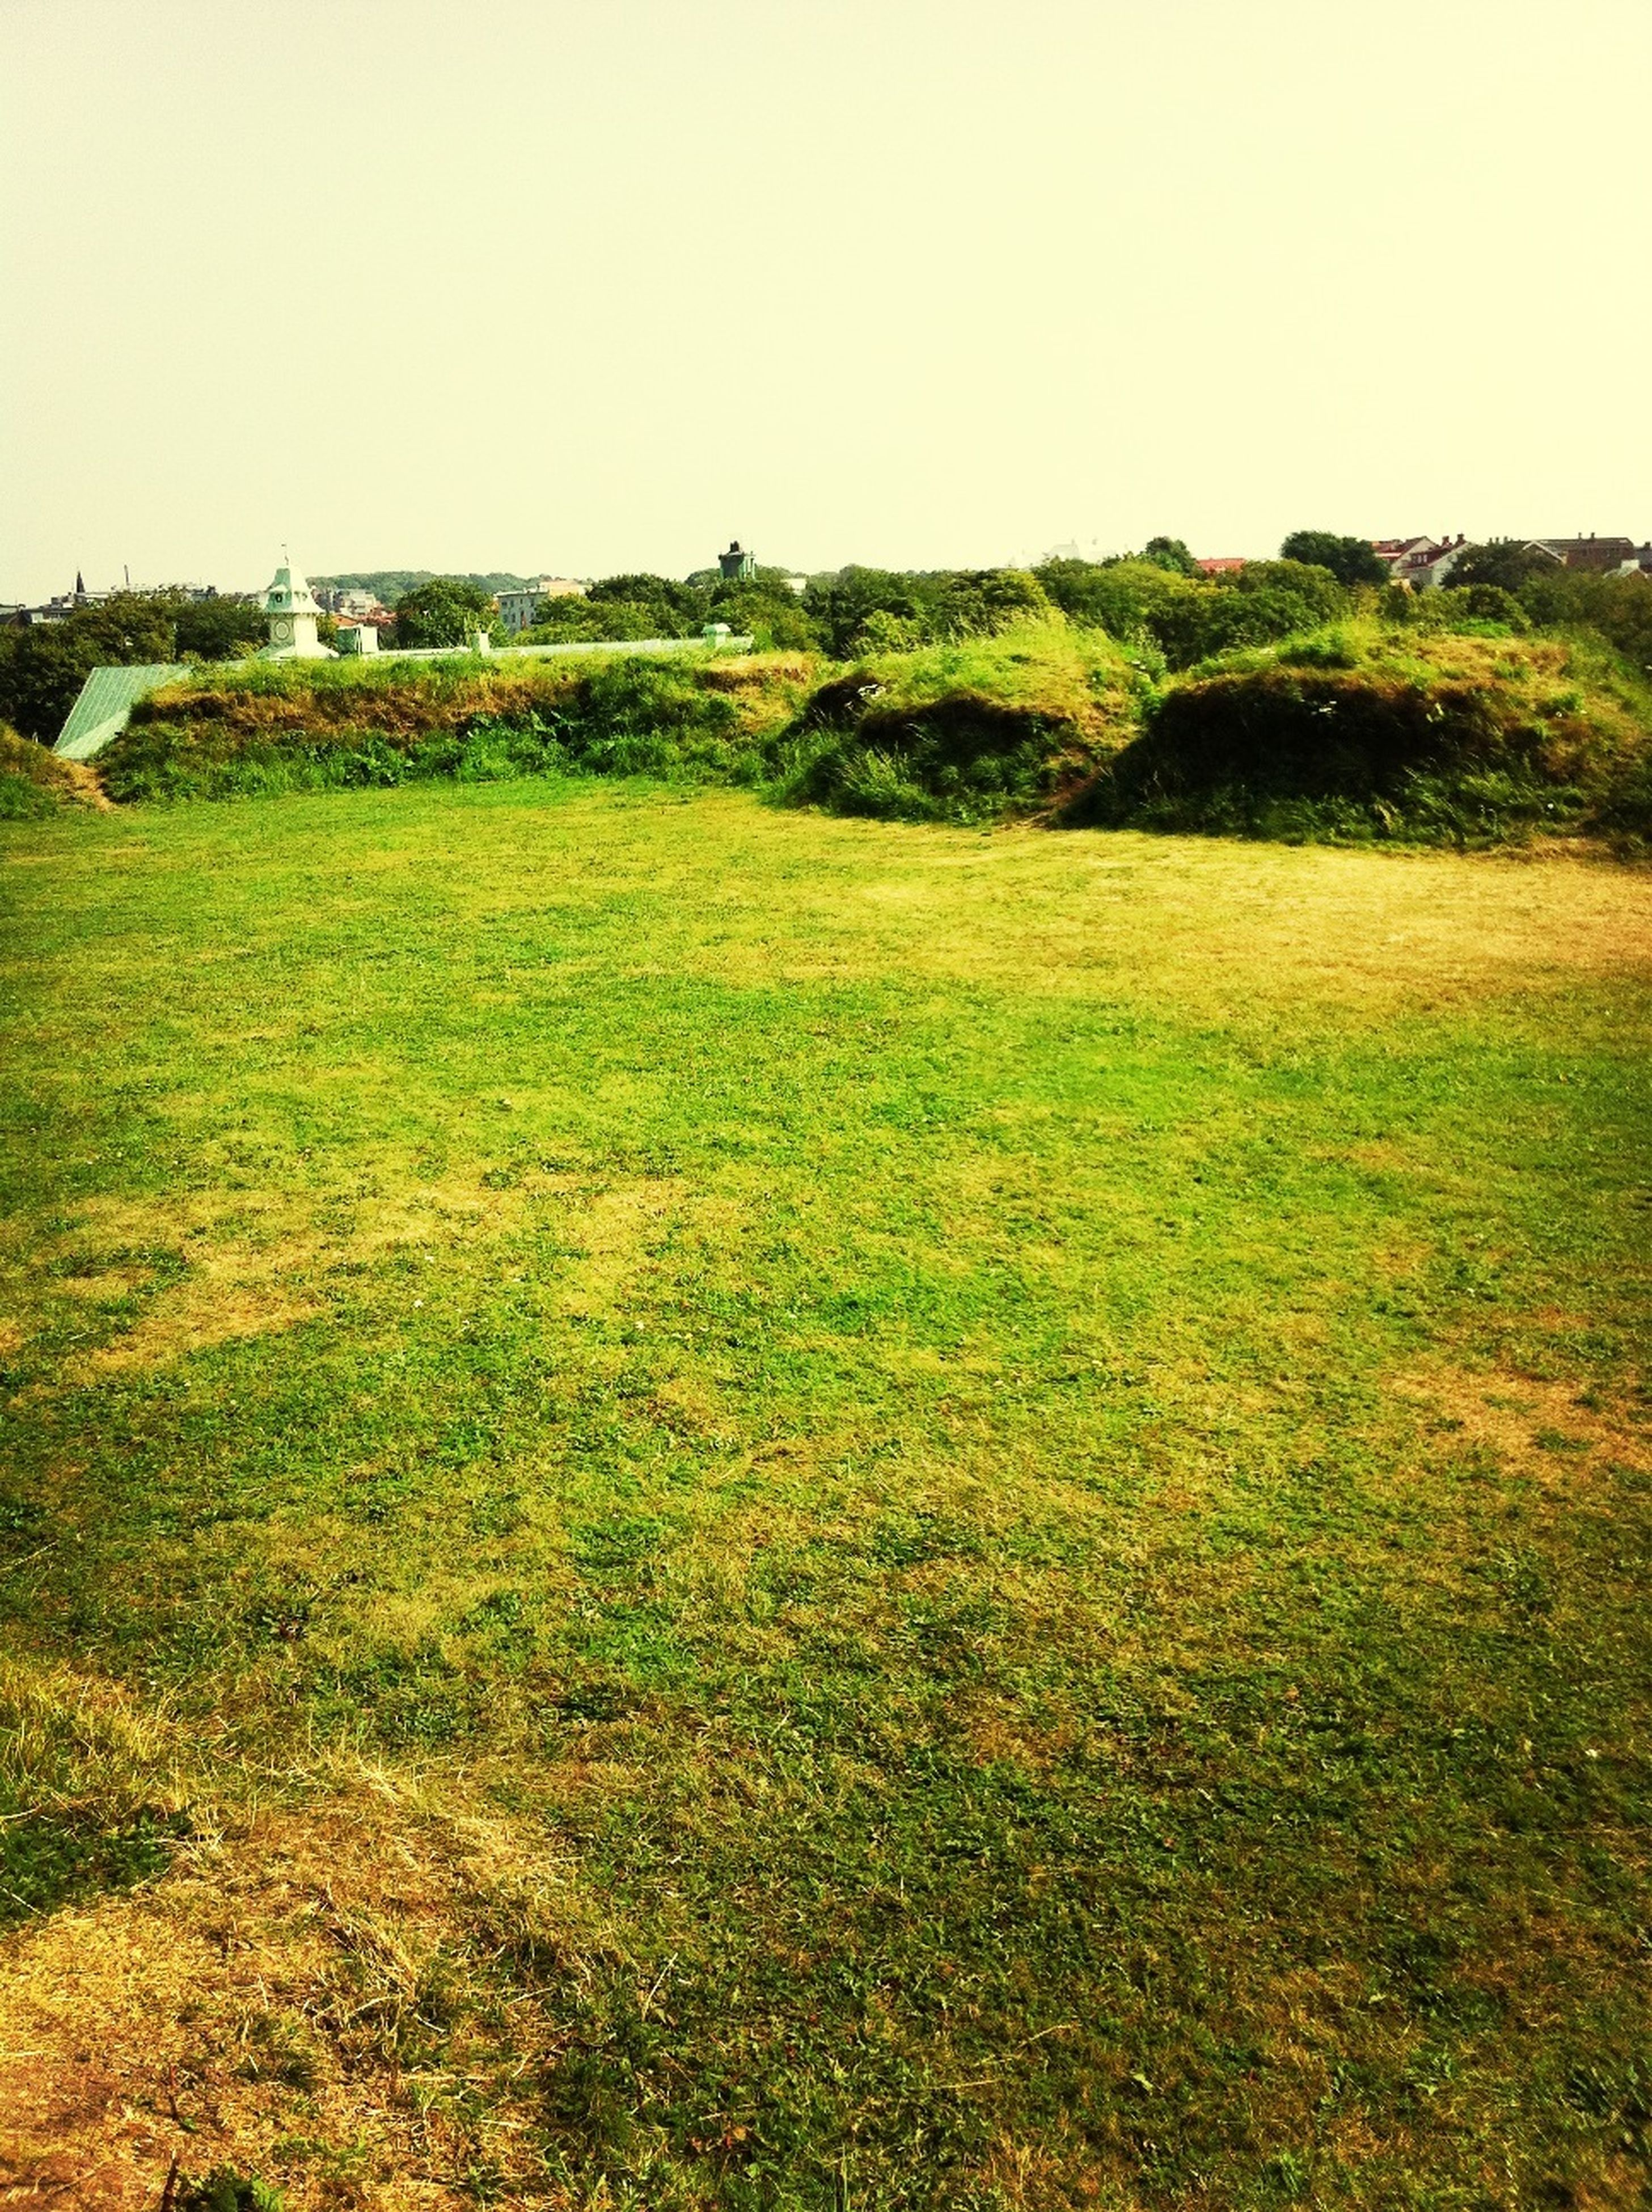 grass, field, landscape, clear sky, tranquility, tranquil scene, grassy, nature, scenics, green color, beauty in nature, growth, tree, rural scene, sky, plant, day, copy space, hill, built structure